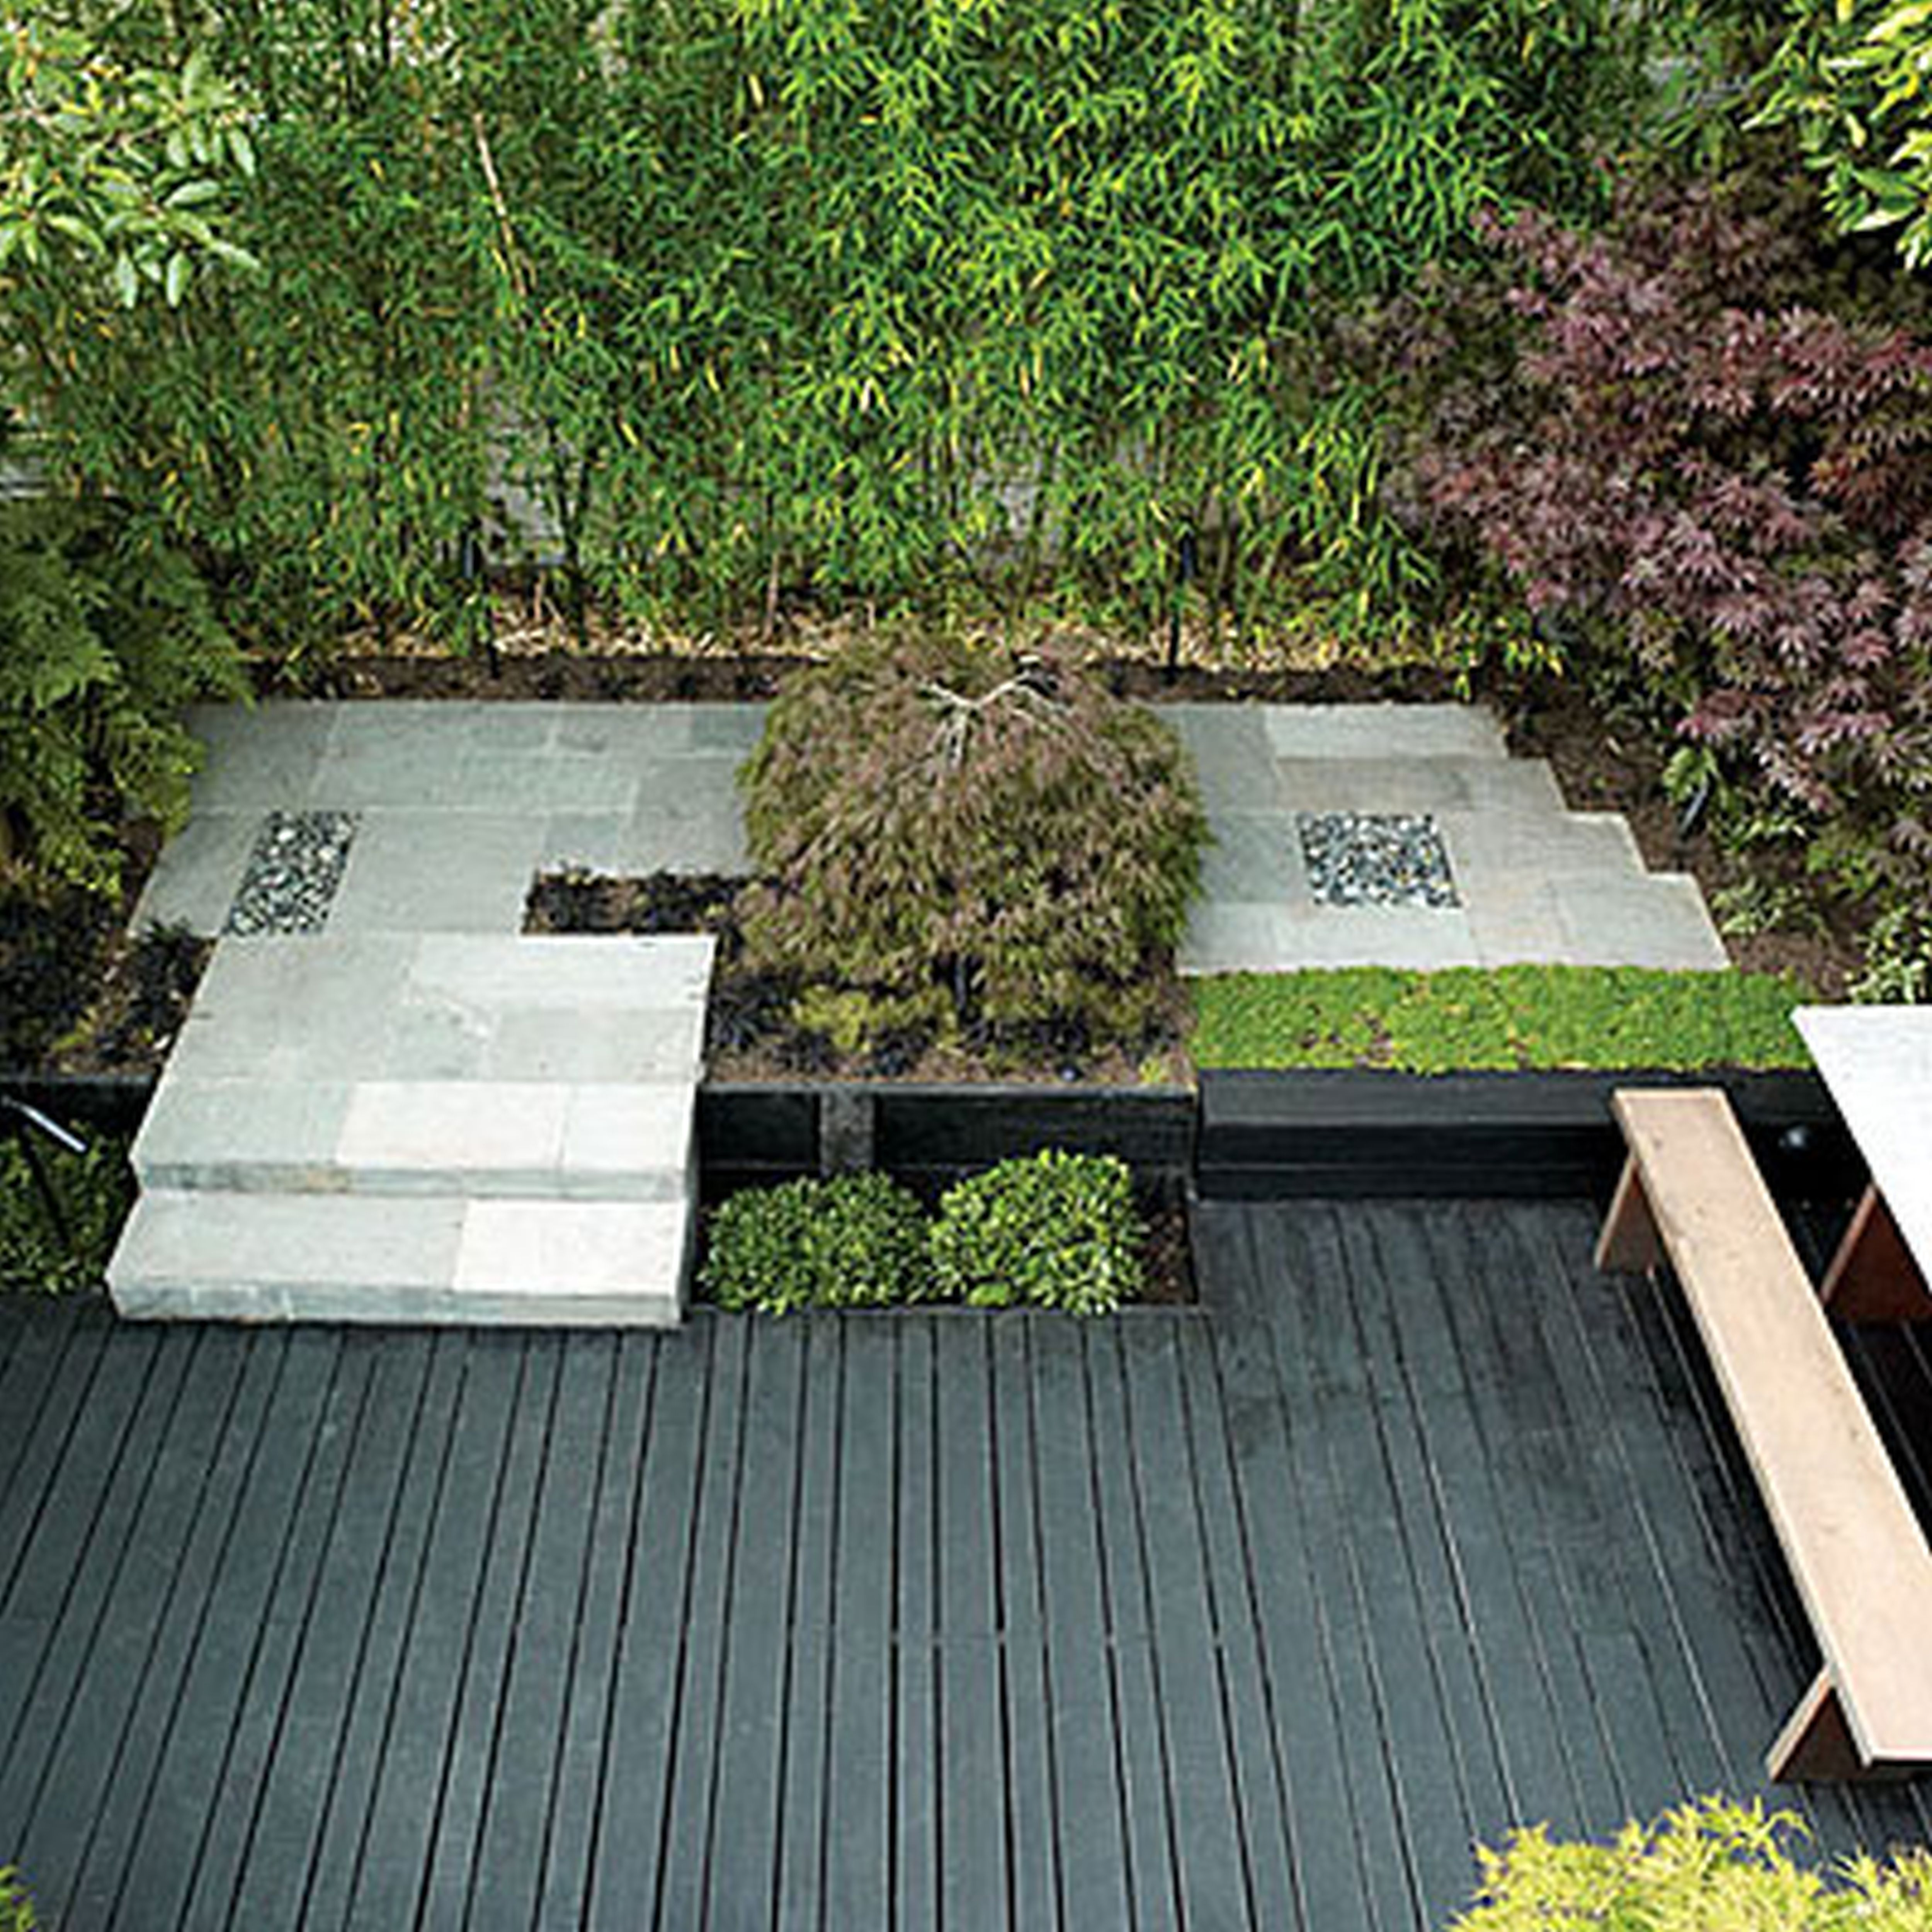 Modern Landscape Design For Small Spaces: Architecture,Inspiring Landscape Design Small Yard With